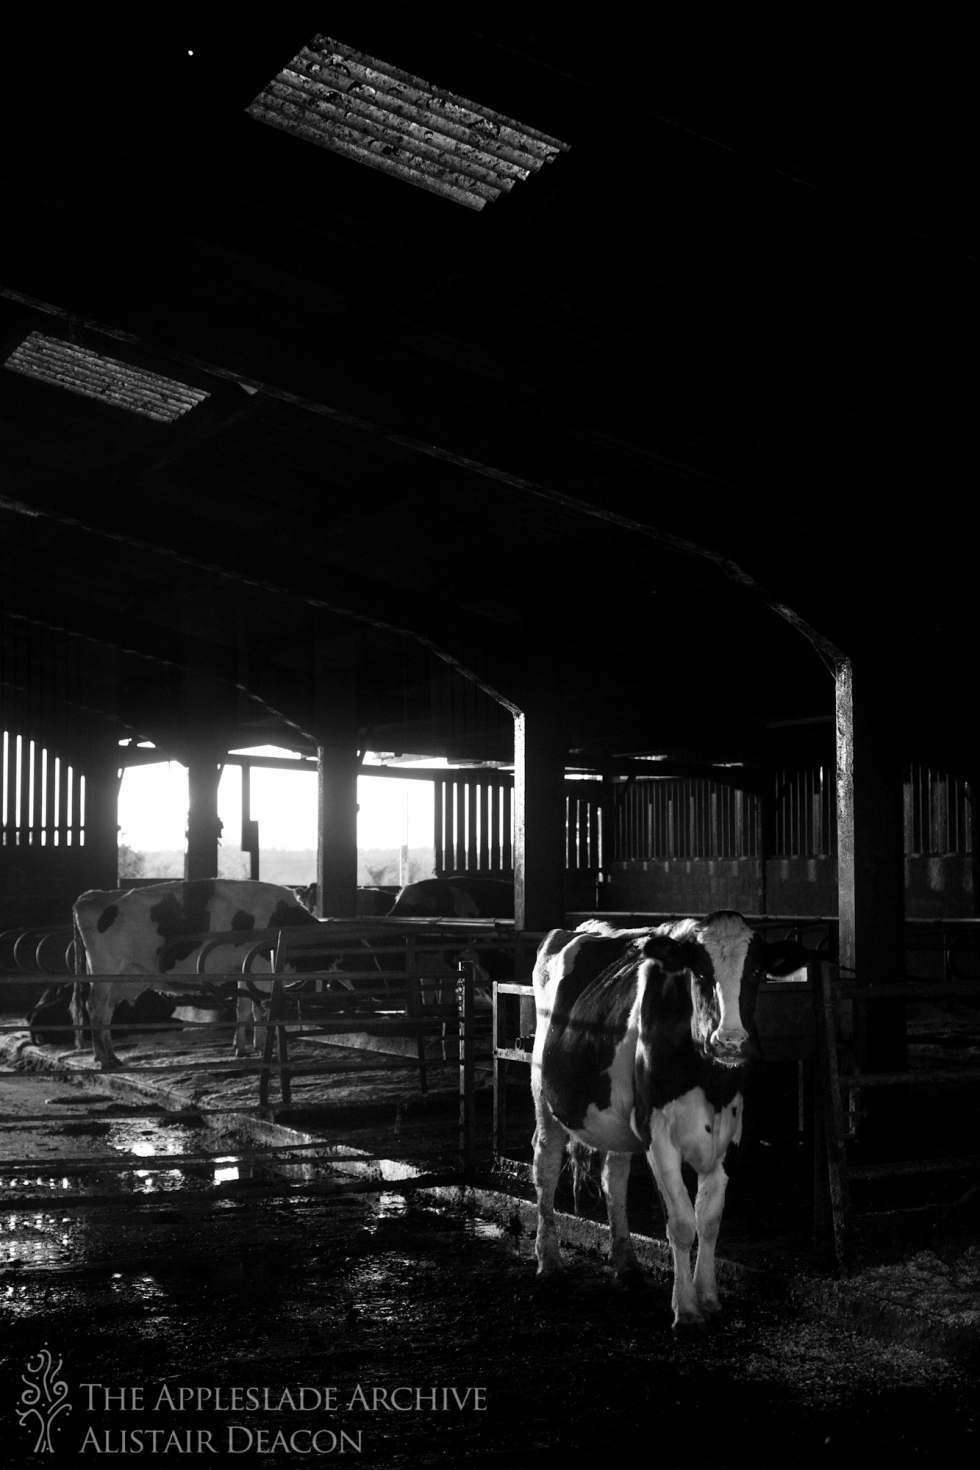 Cattle in the cow shed, Ayles Farm, Avon, Dorset, 22nd Nov 2013